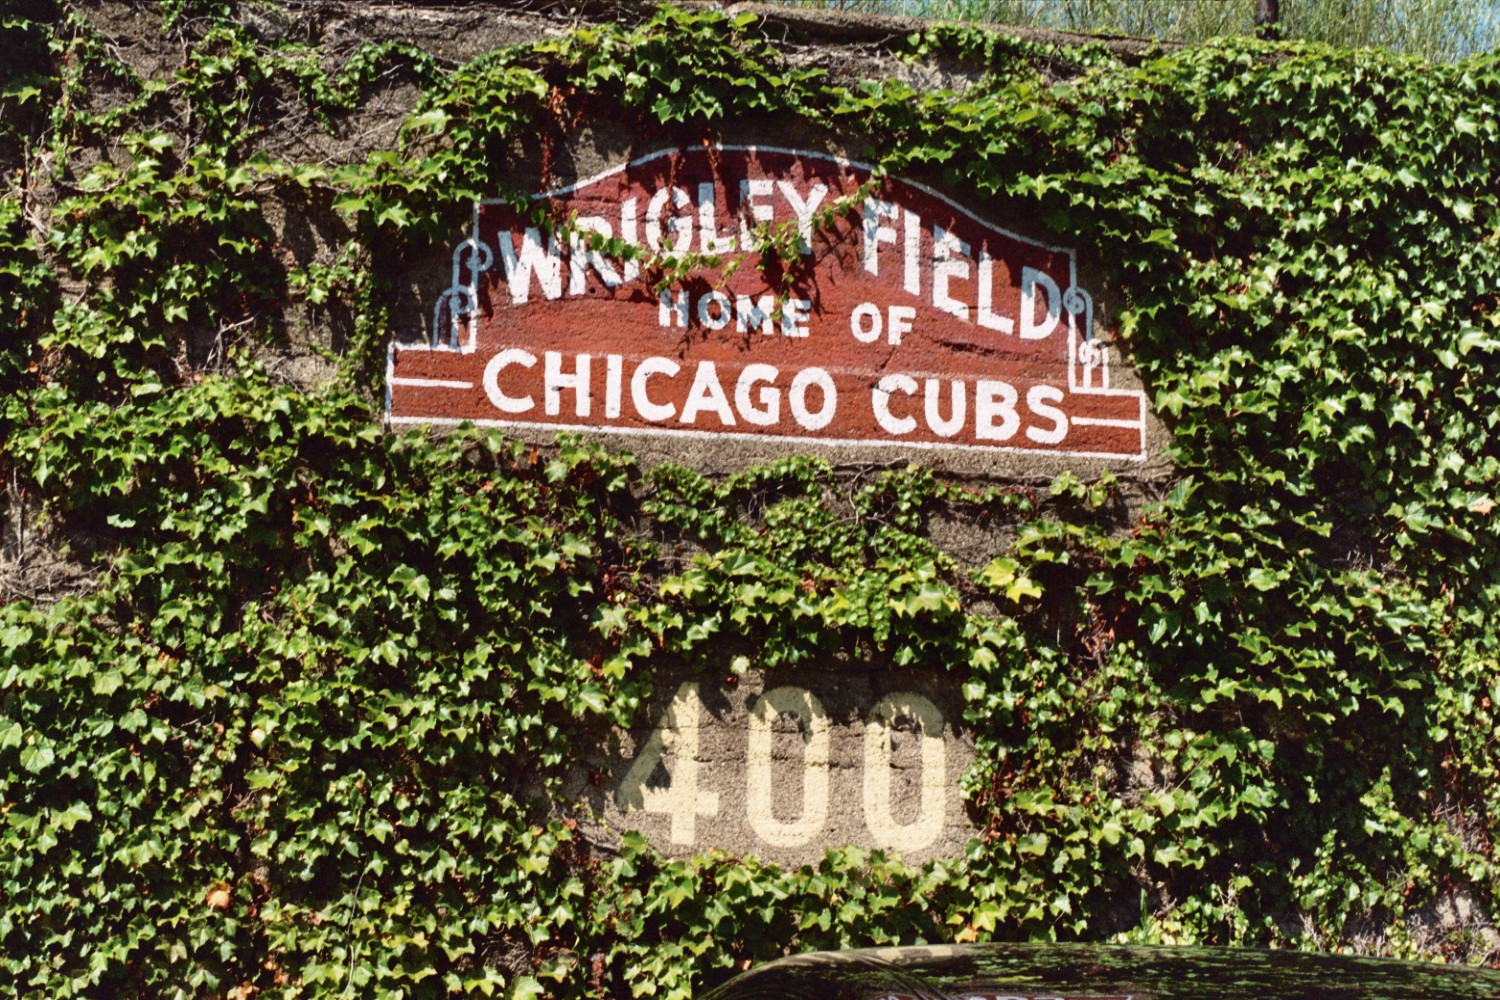 The signature ivy walls have served as an outfield perimeter at Wrigley since 1914. (Photo courtesy of lasordaslair.com)